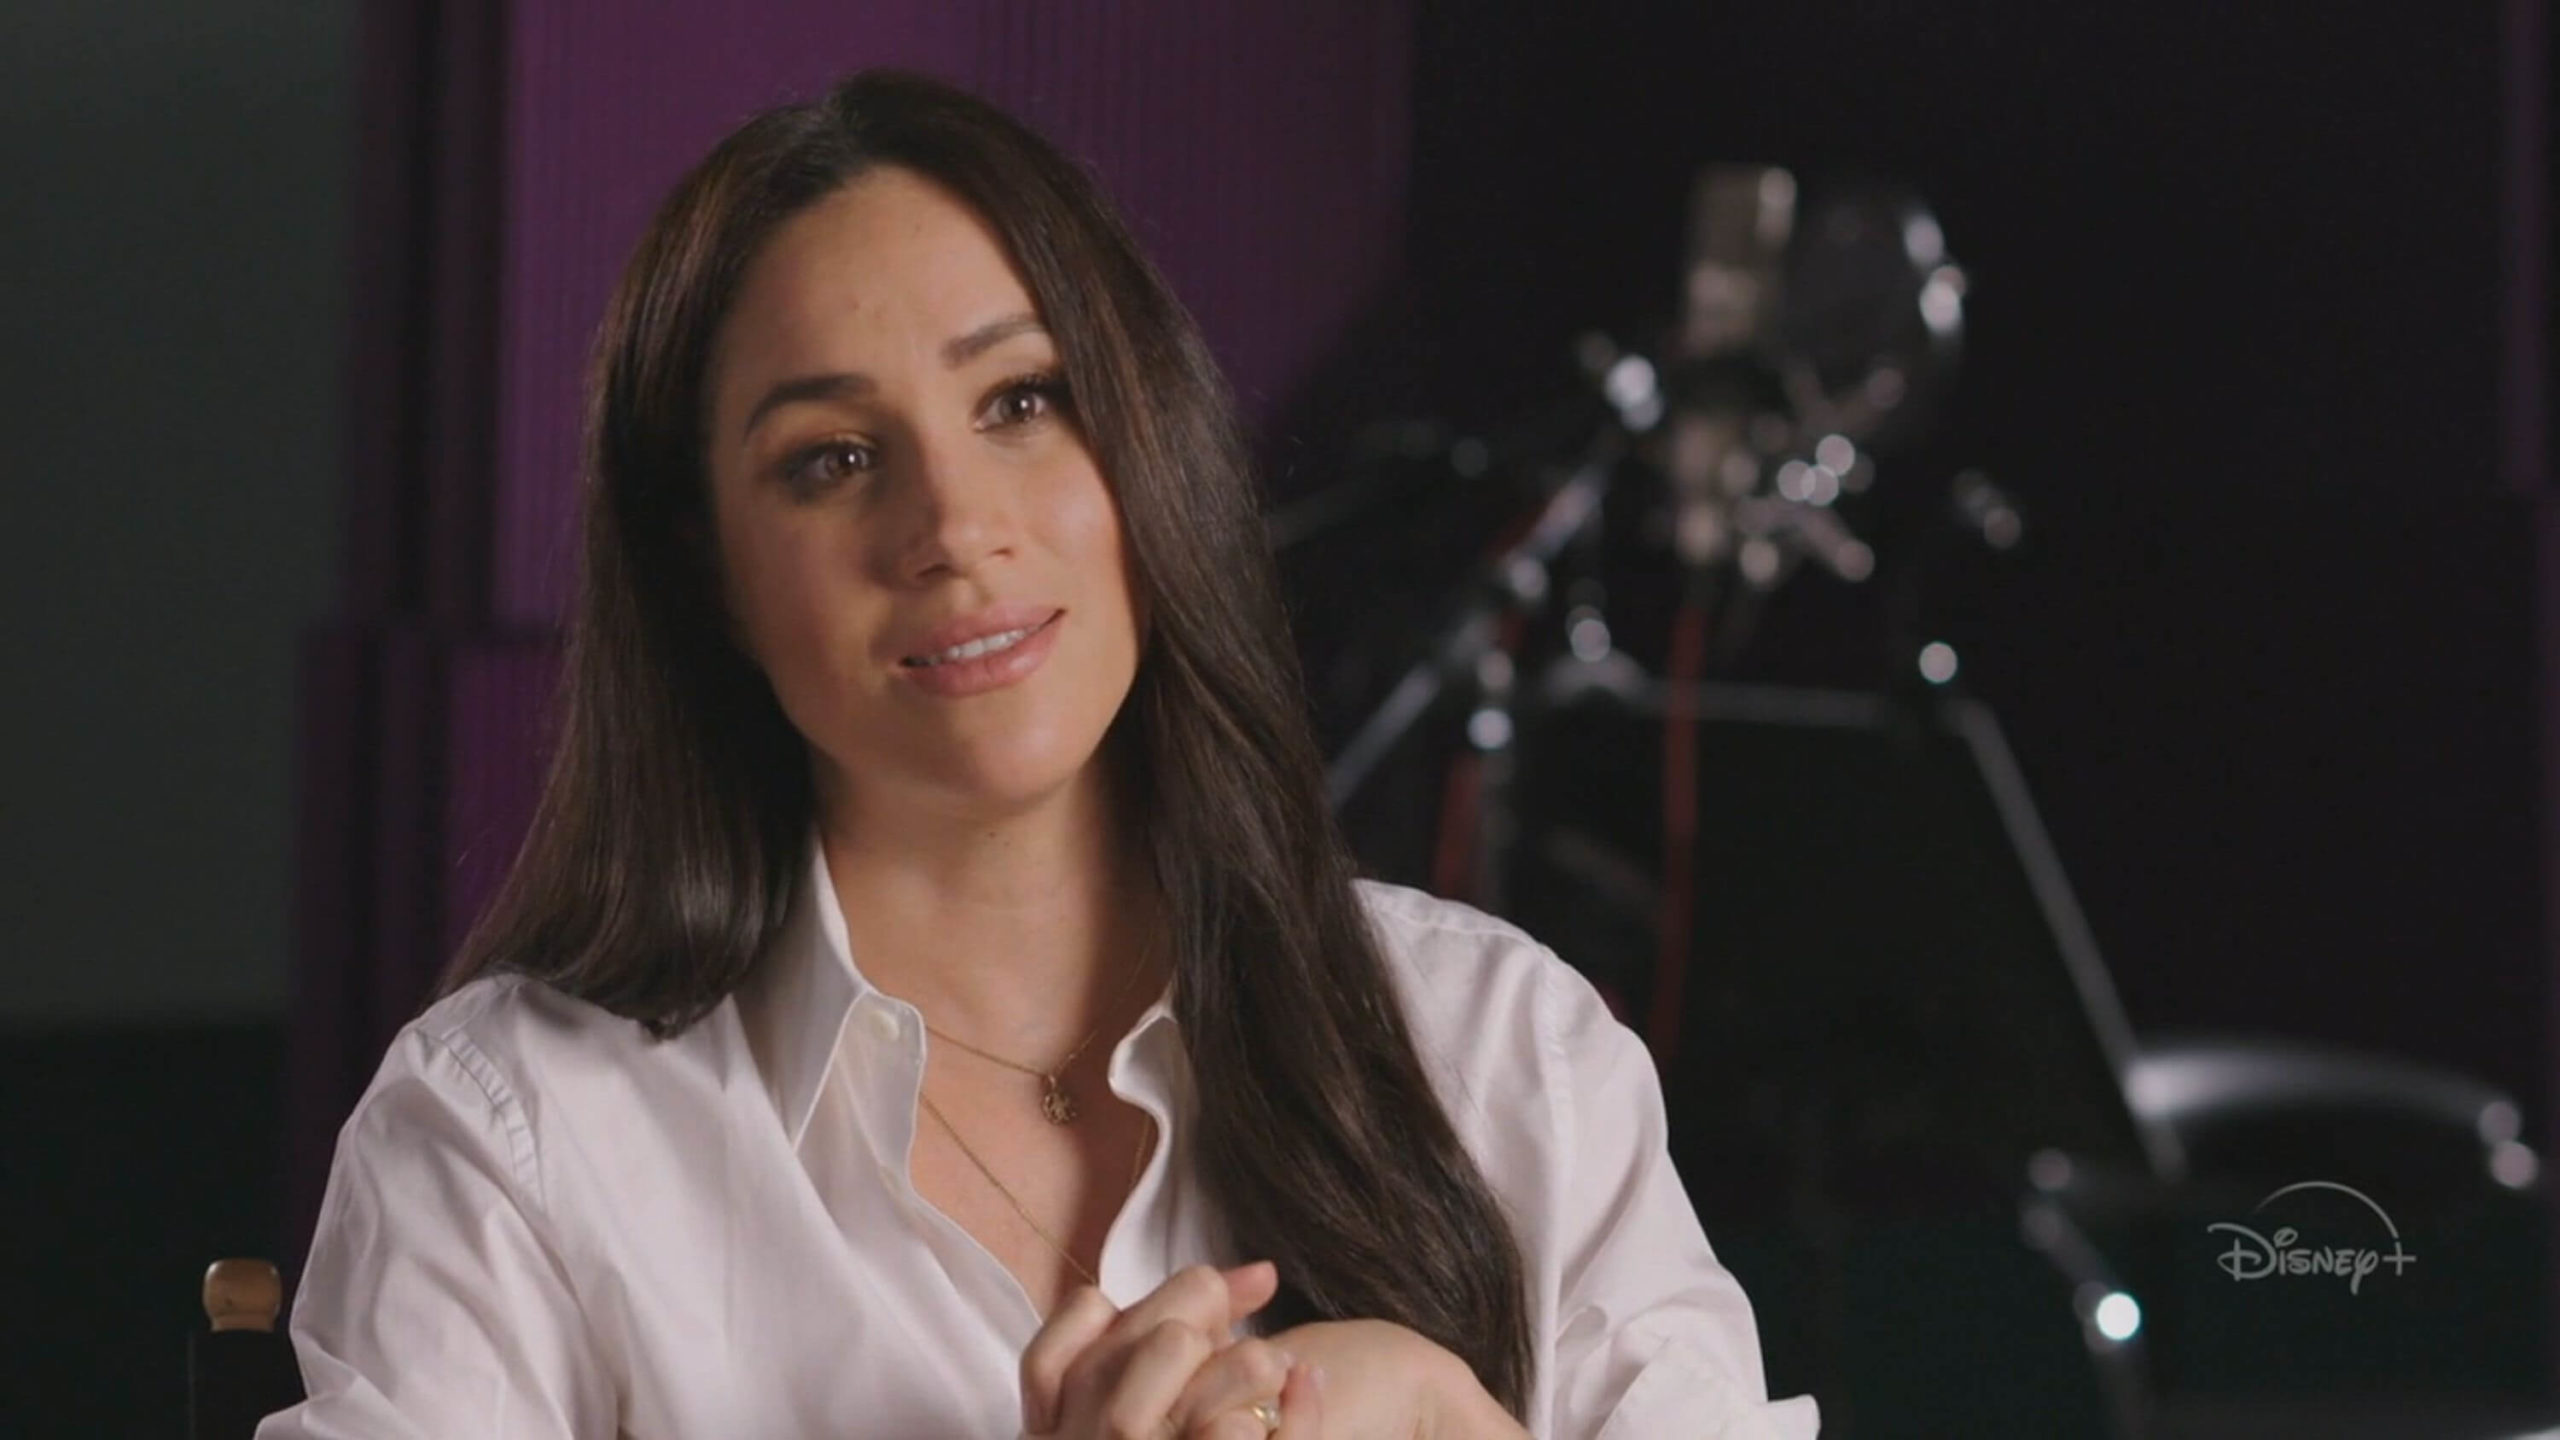 Meghan Markle said it was difficult to let them know how she felt about George Floyd's death